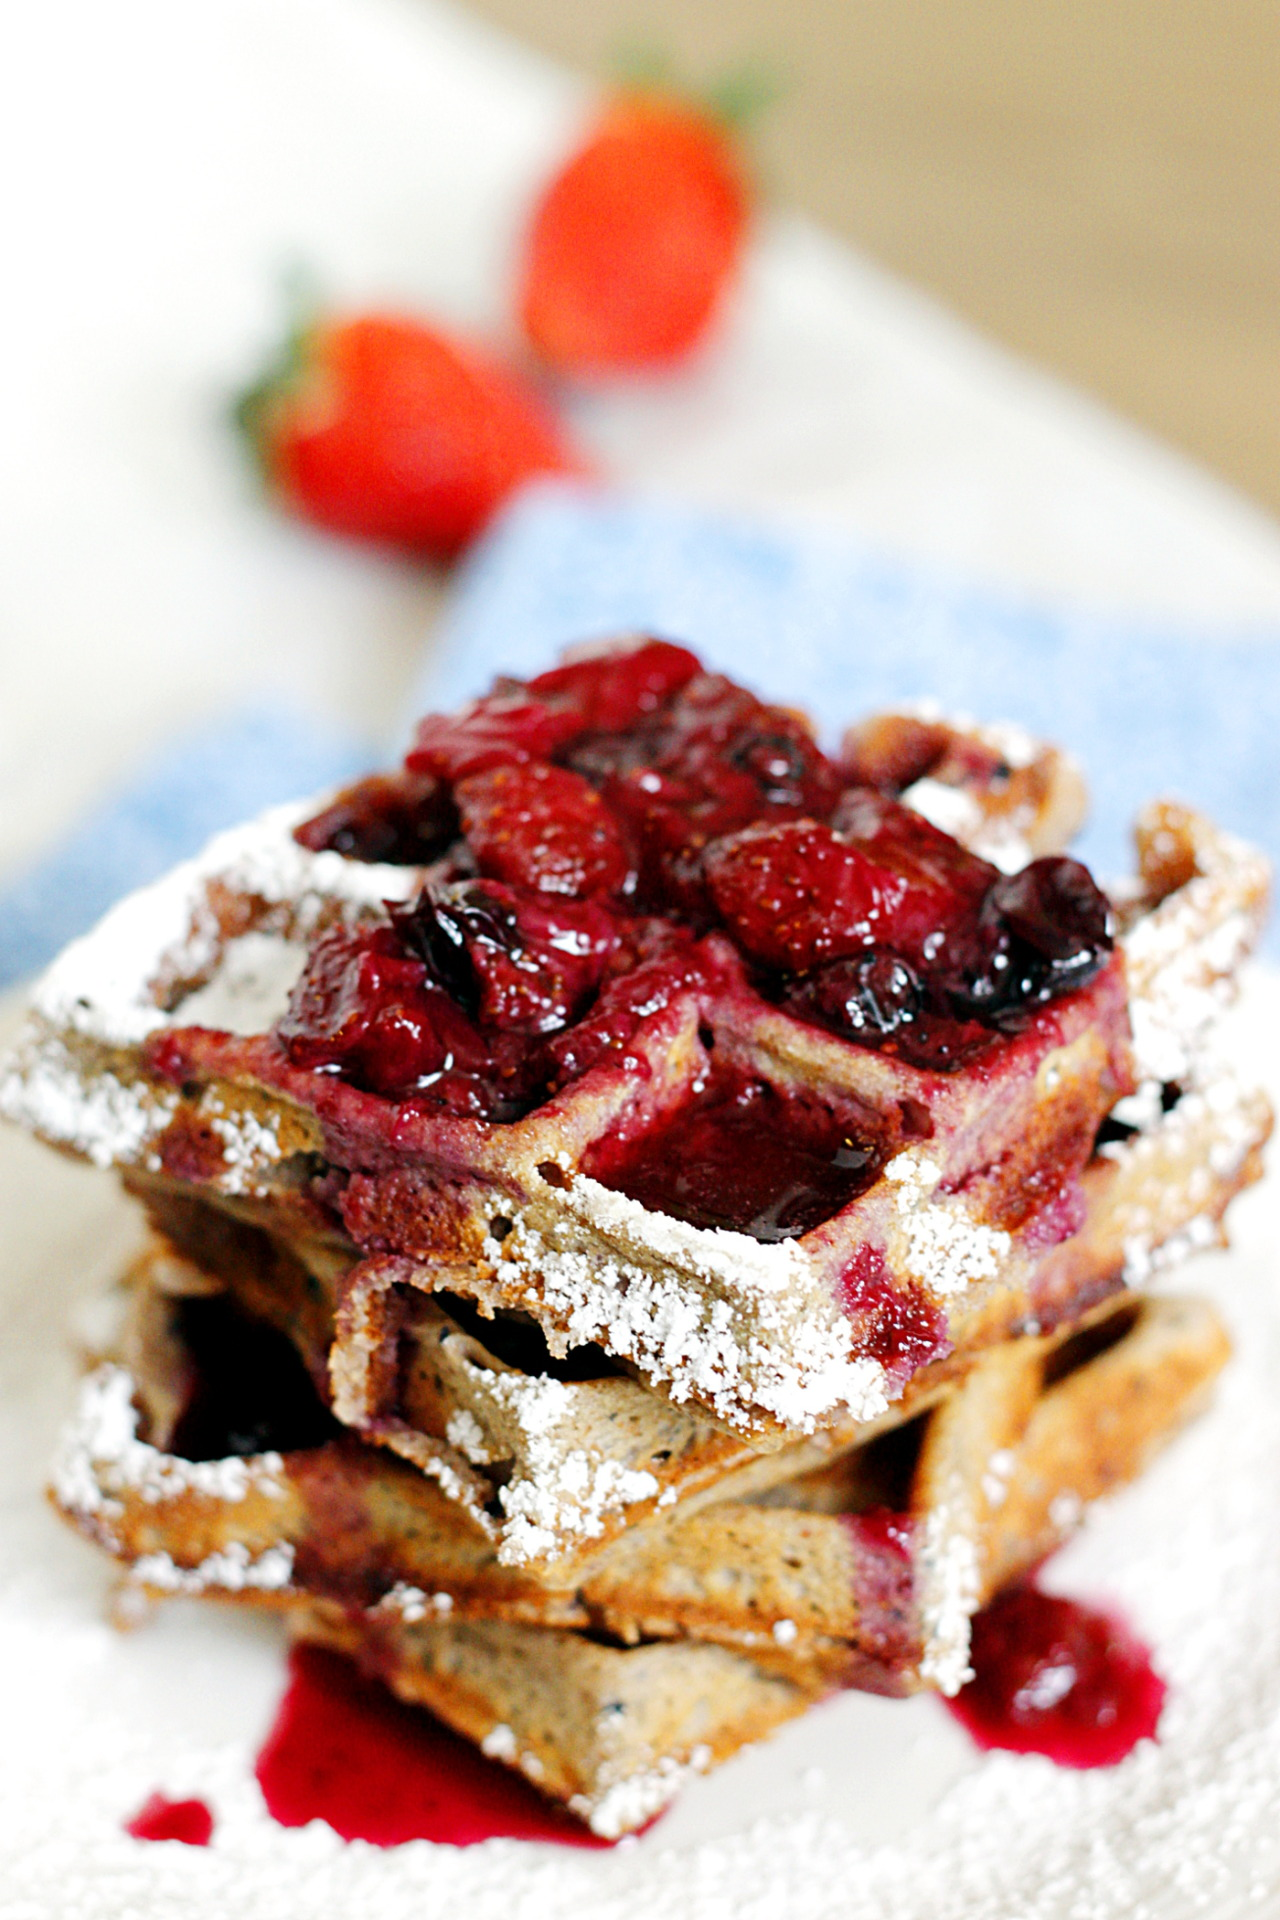 Whole Wheat Berry Waffles with Strawberry Blueberry Syrup